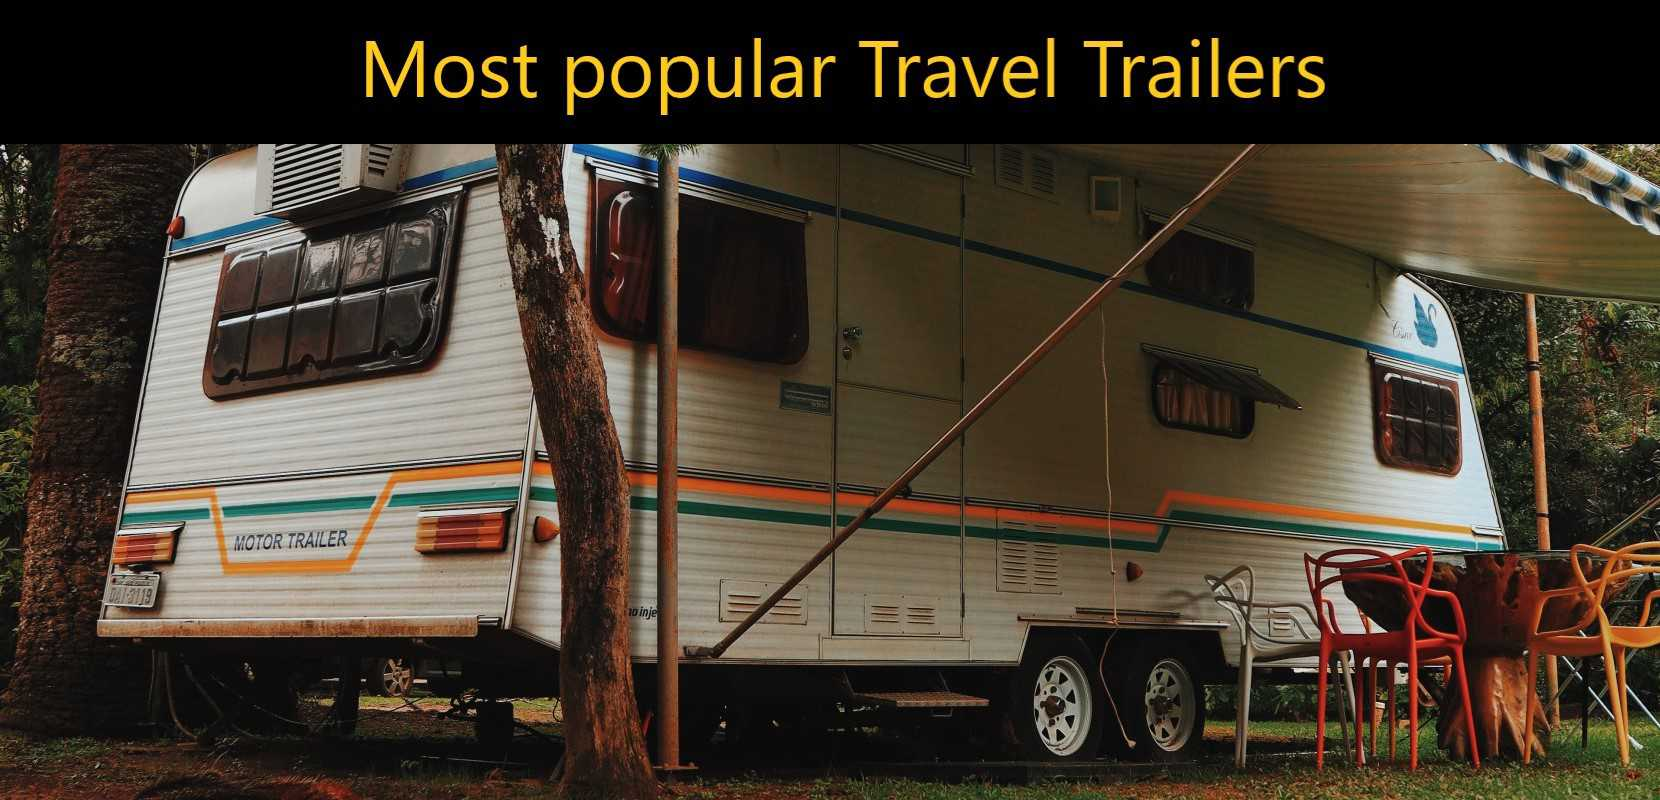 Models of Popular Travel Trailers